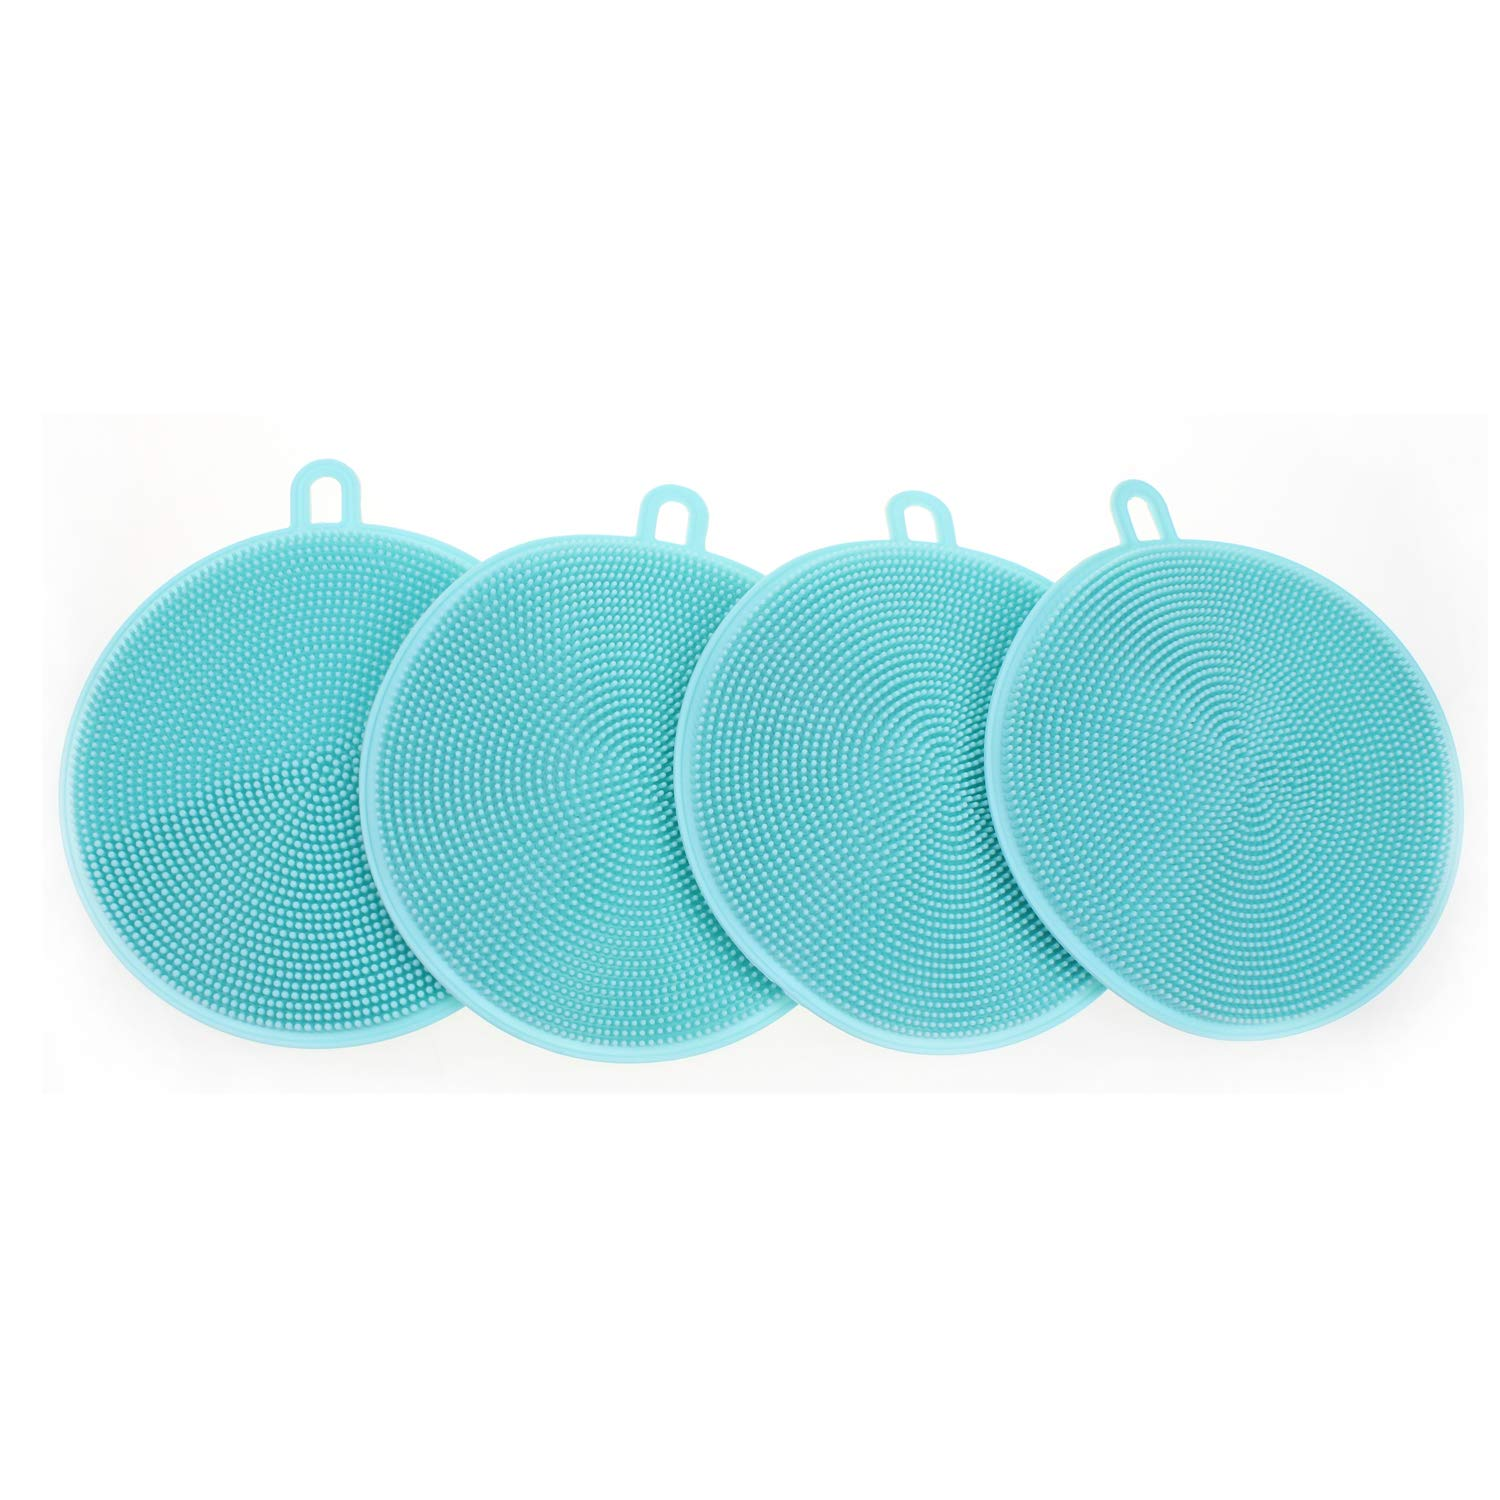 Silicone Dish Sponge Cleaner Silicone Scrubber For Kitchen Non Stick Dishwashing /& Baby Care Sponge Brush Household Health Silicone Washing Cleaning Sponges Antibacterial Mildew-Free Brushes Blue